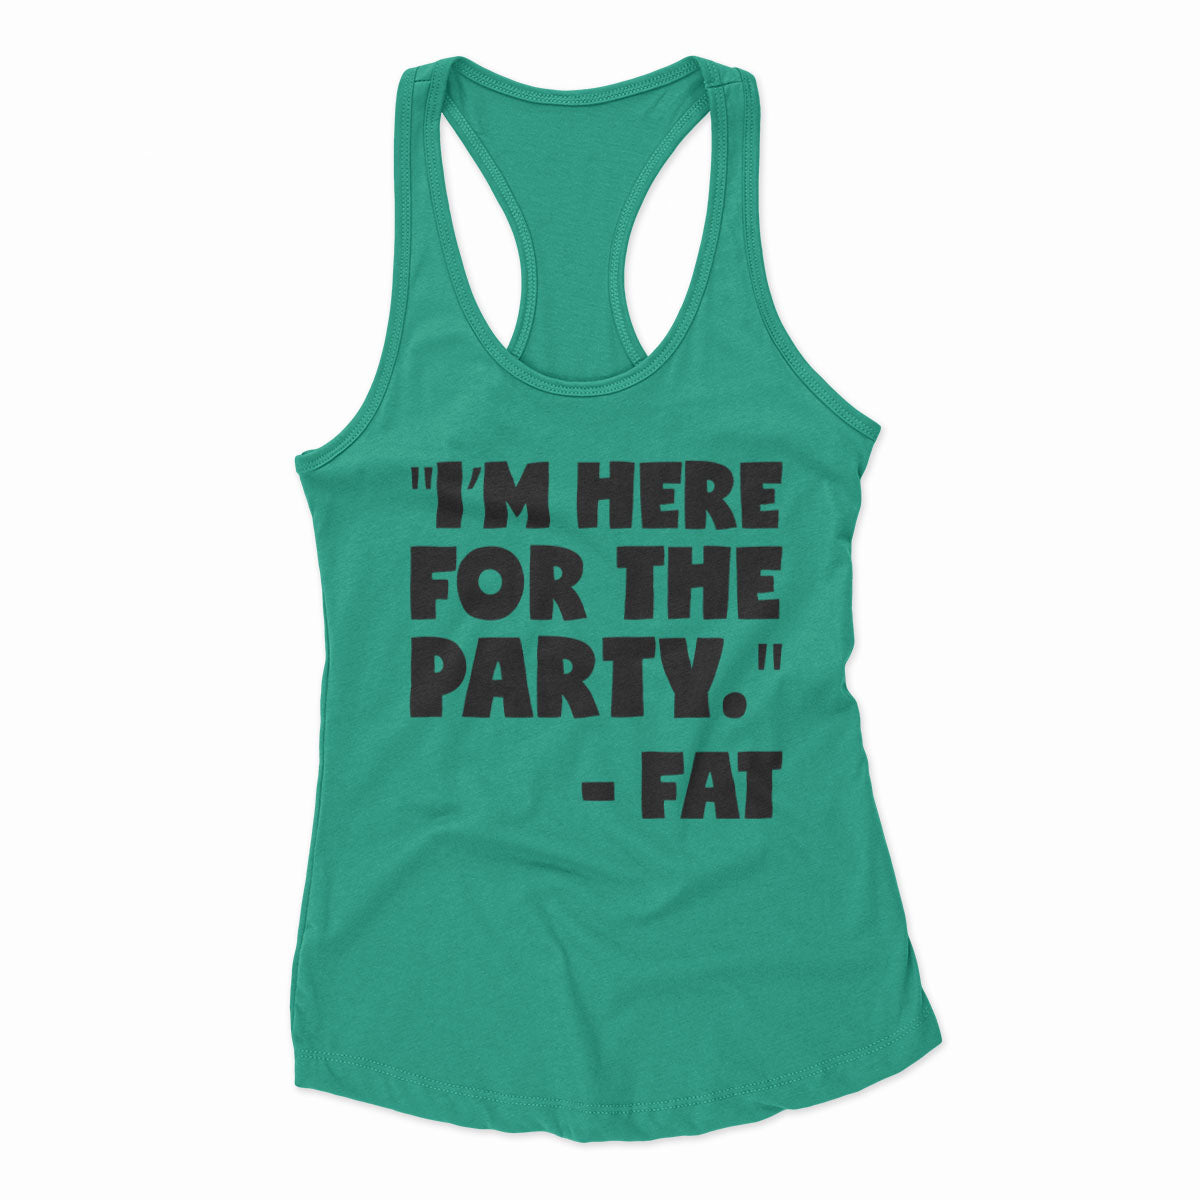 I'm Here For The Party - Fat